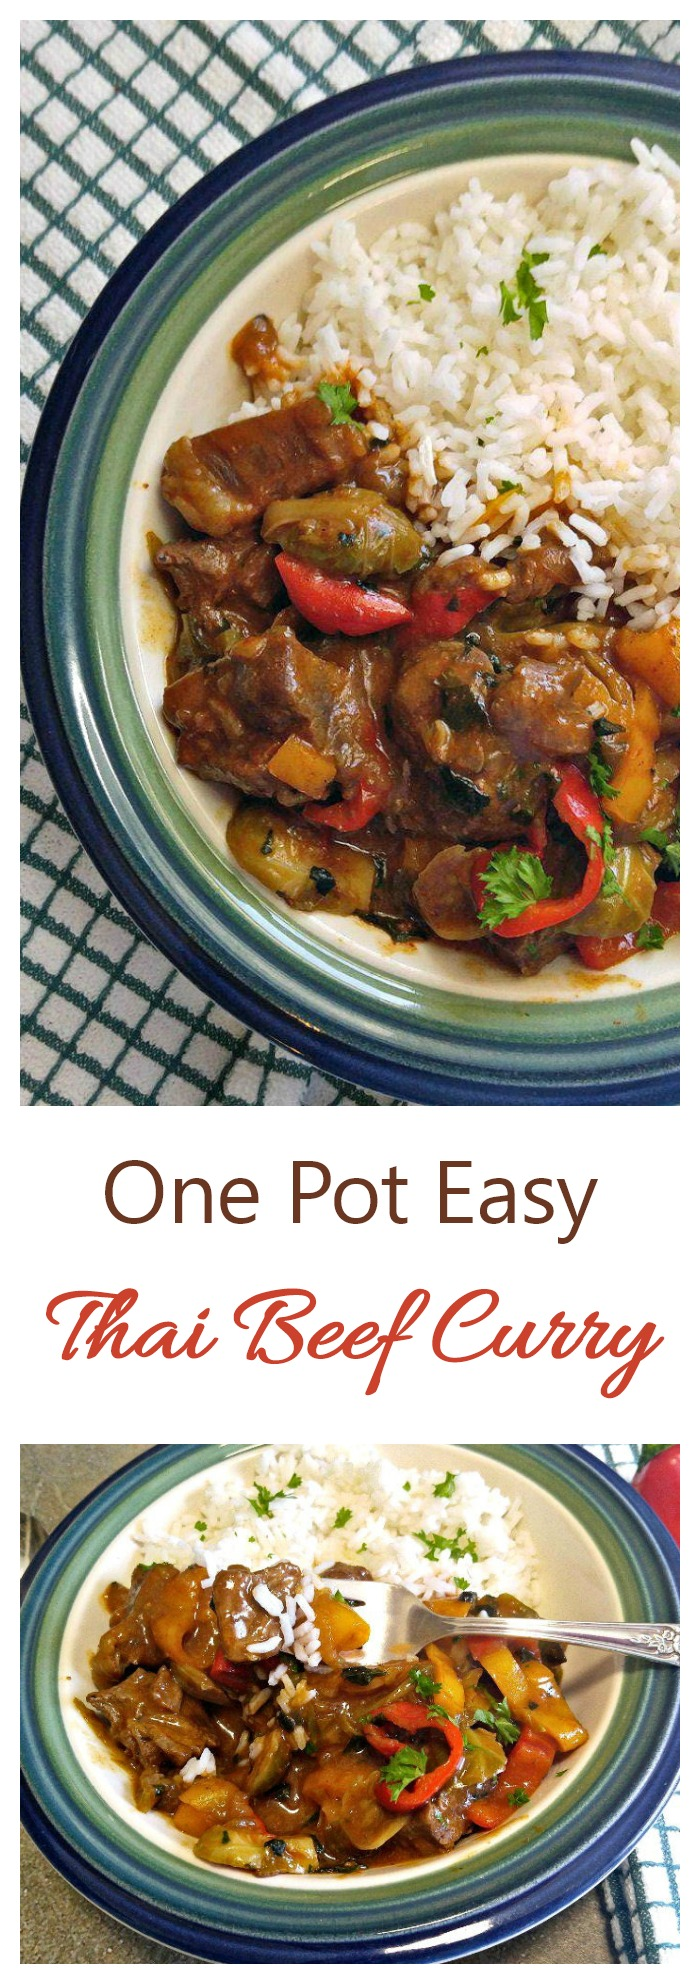 This easy one pot beef curry is rich is flavor and is super easy to make #beefcurry #thaicurry